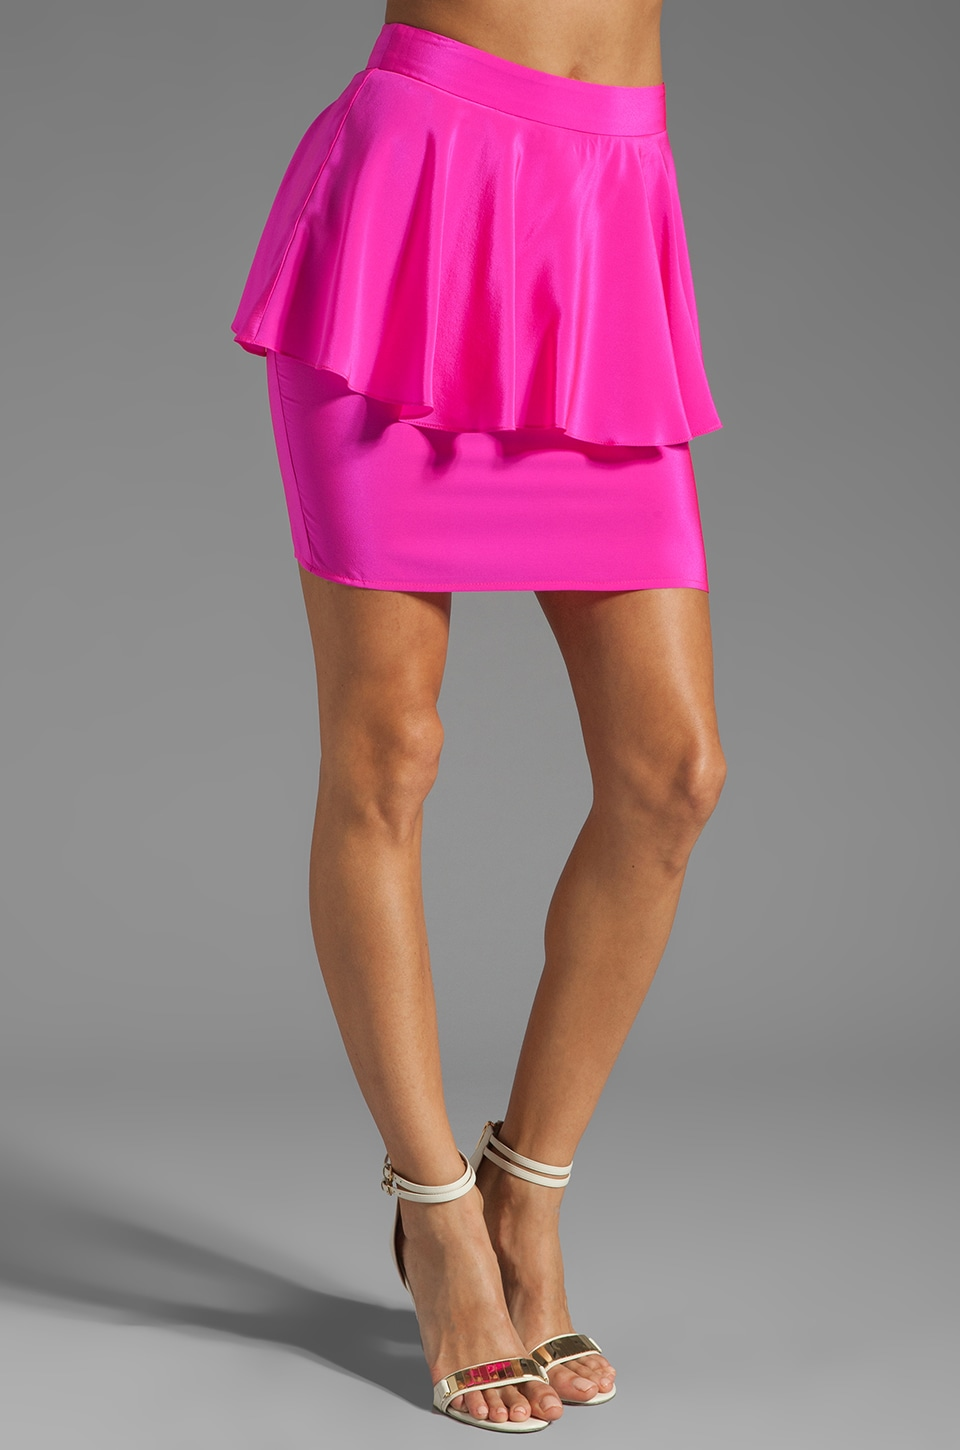 Amanda Uprichard Silk Peplum Skirt in Hot Pink